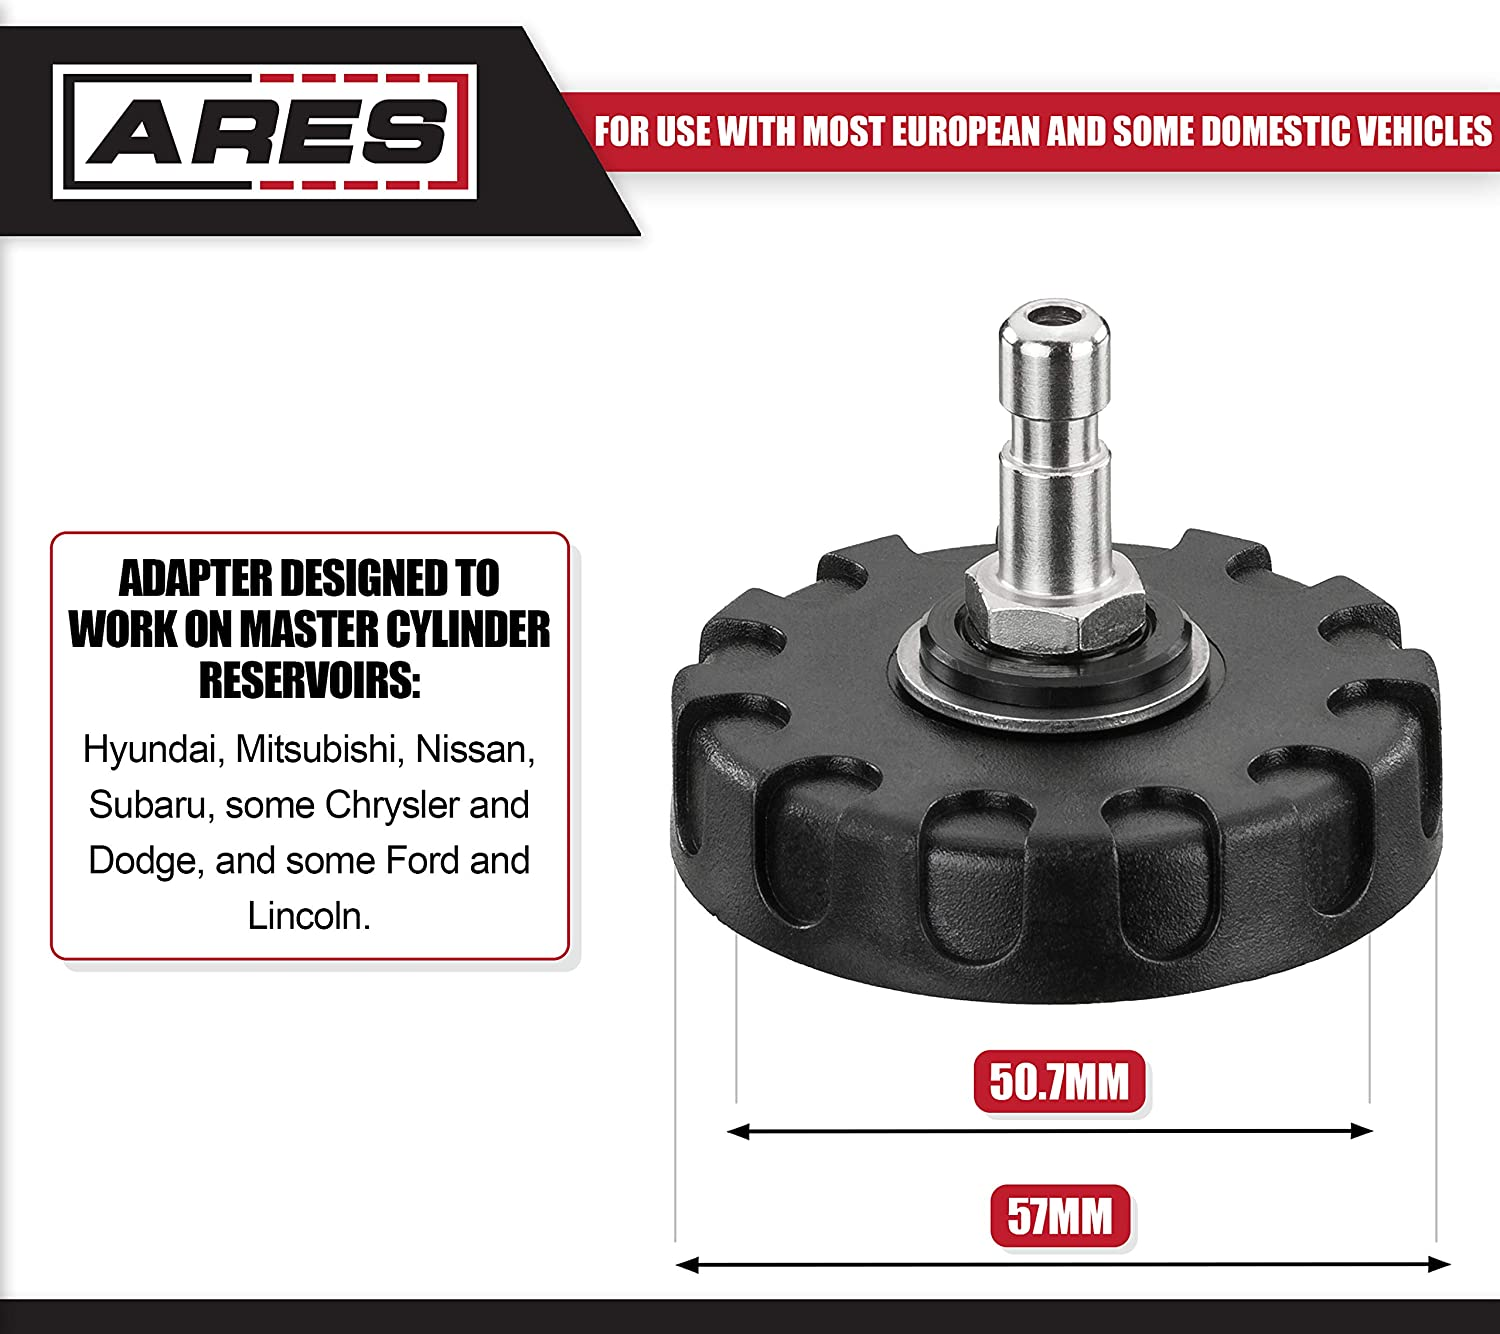 Use with Brake Fluid Bleeders Use with Most Imported and Some Domestic Vehicles ARES 18002-50.7mm Master Cylinder Adapter